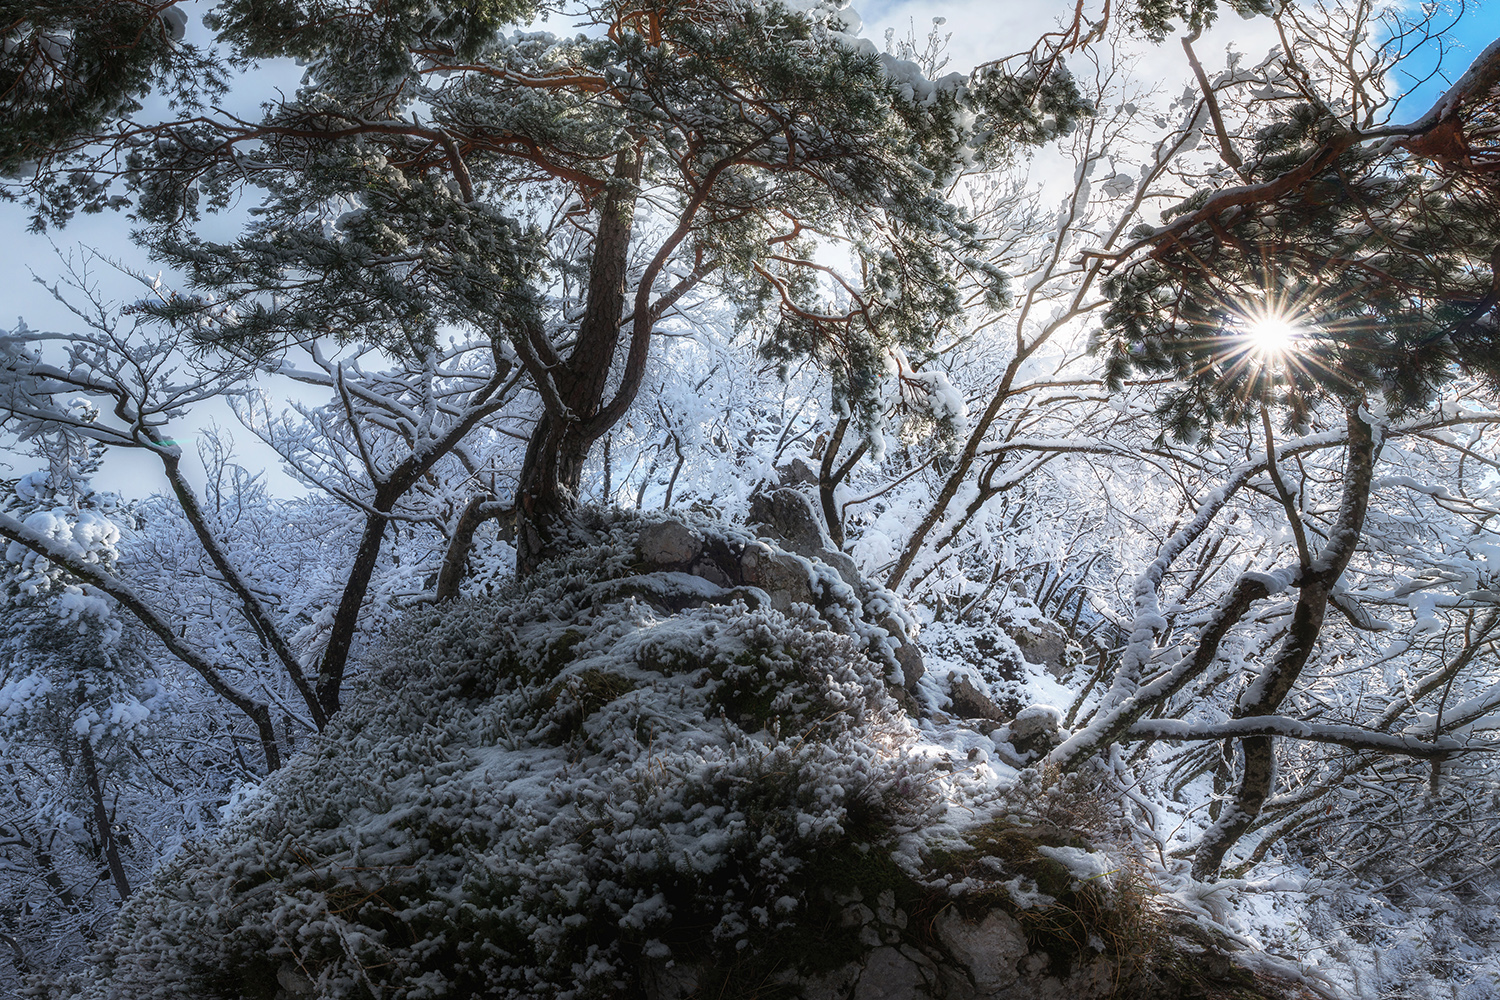 Winter forest by Zavrsnica example image 1